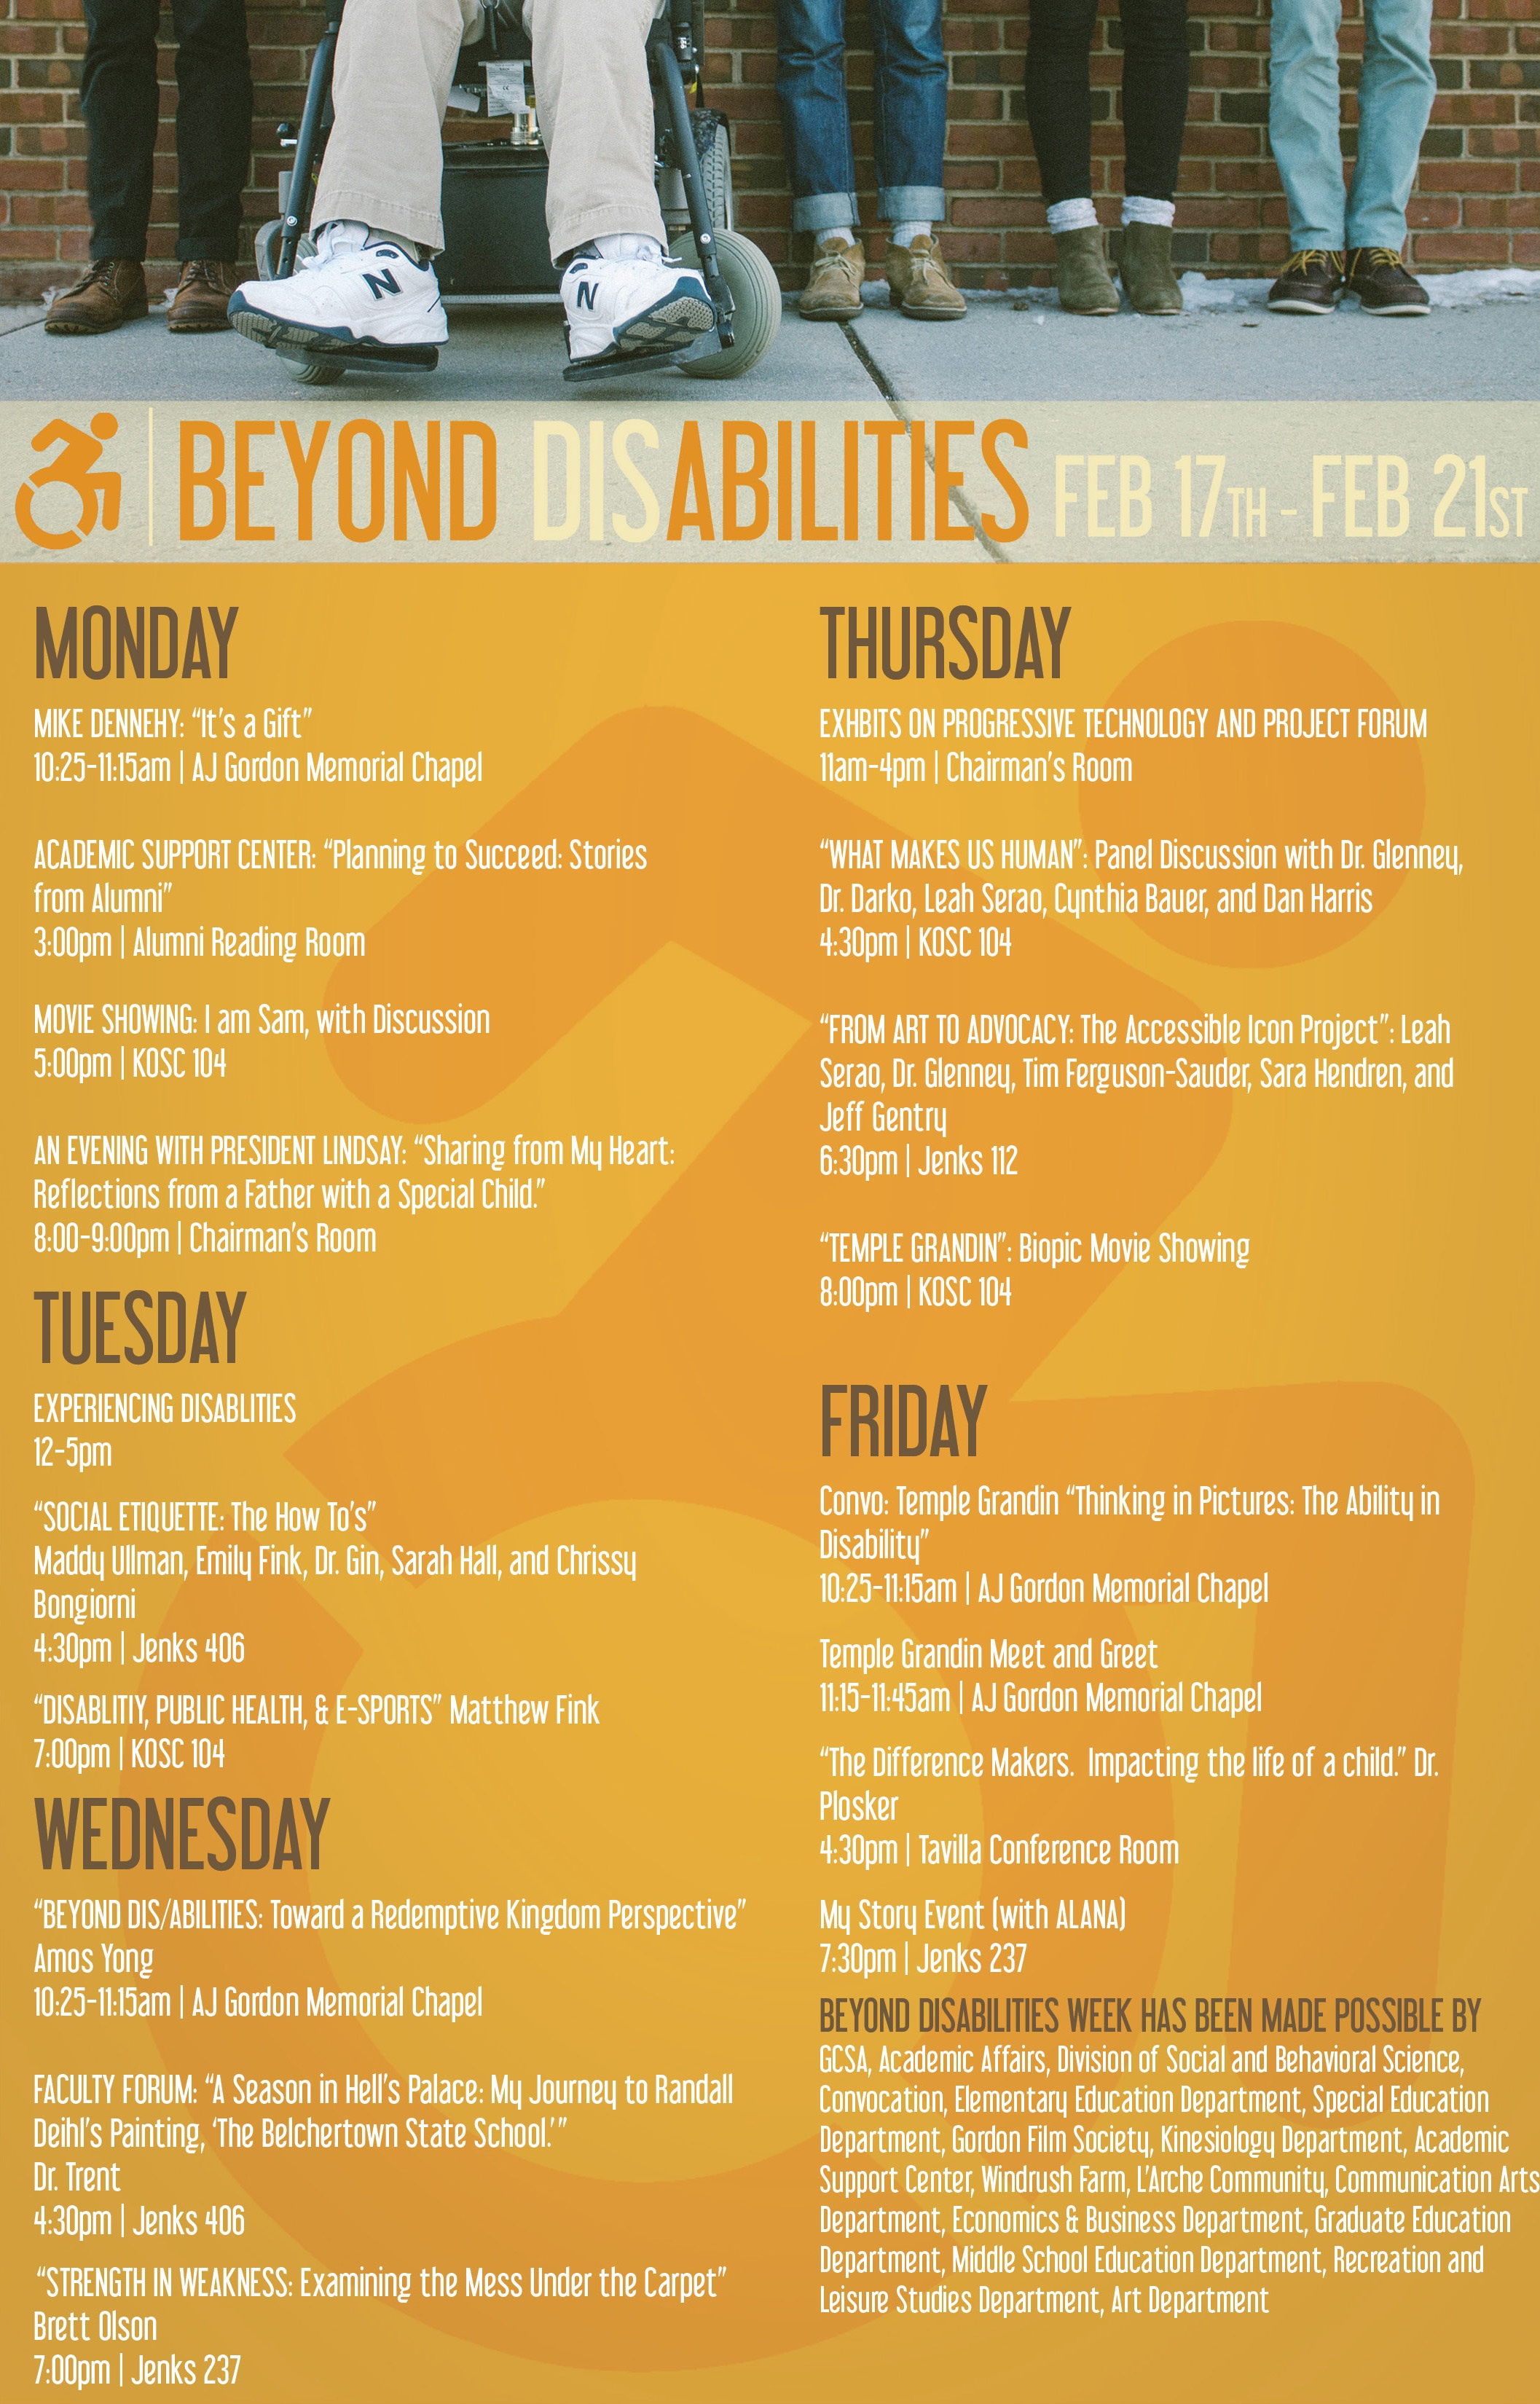 Beyond Disabilities Week, Gordon College, Leah Serao, Temple Grandin Keynote